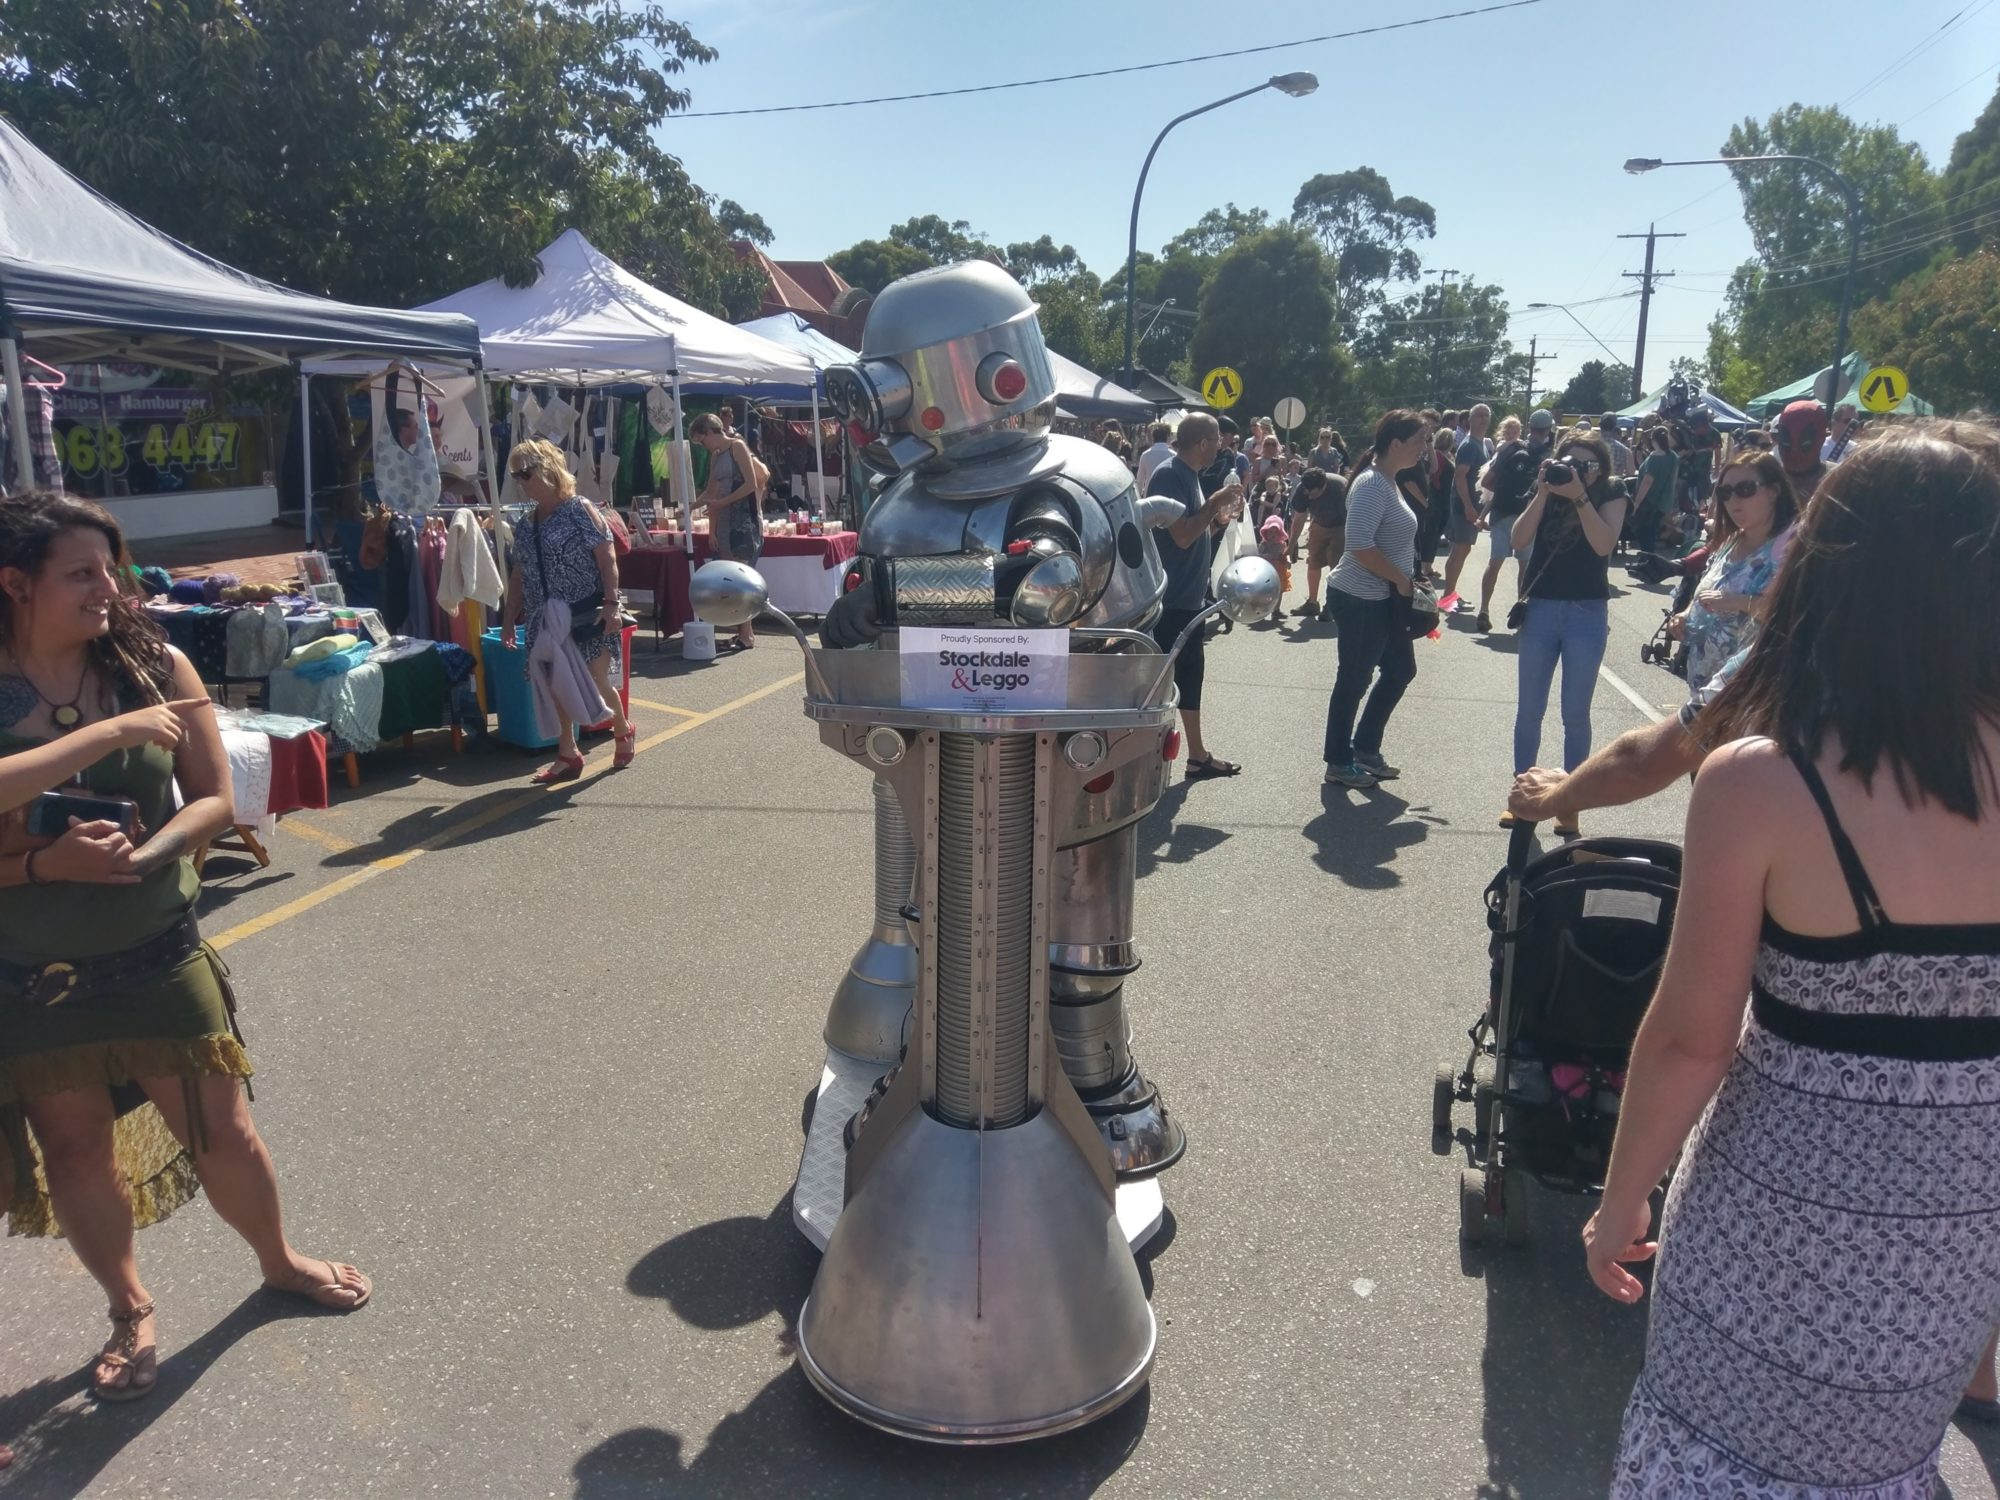 Tubby the robot entertains the crowd